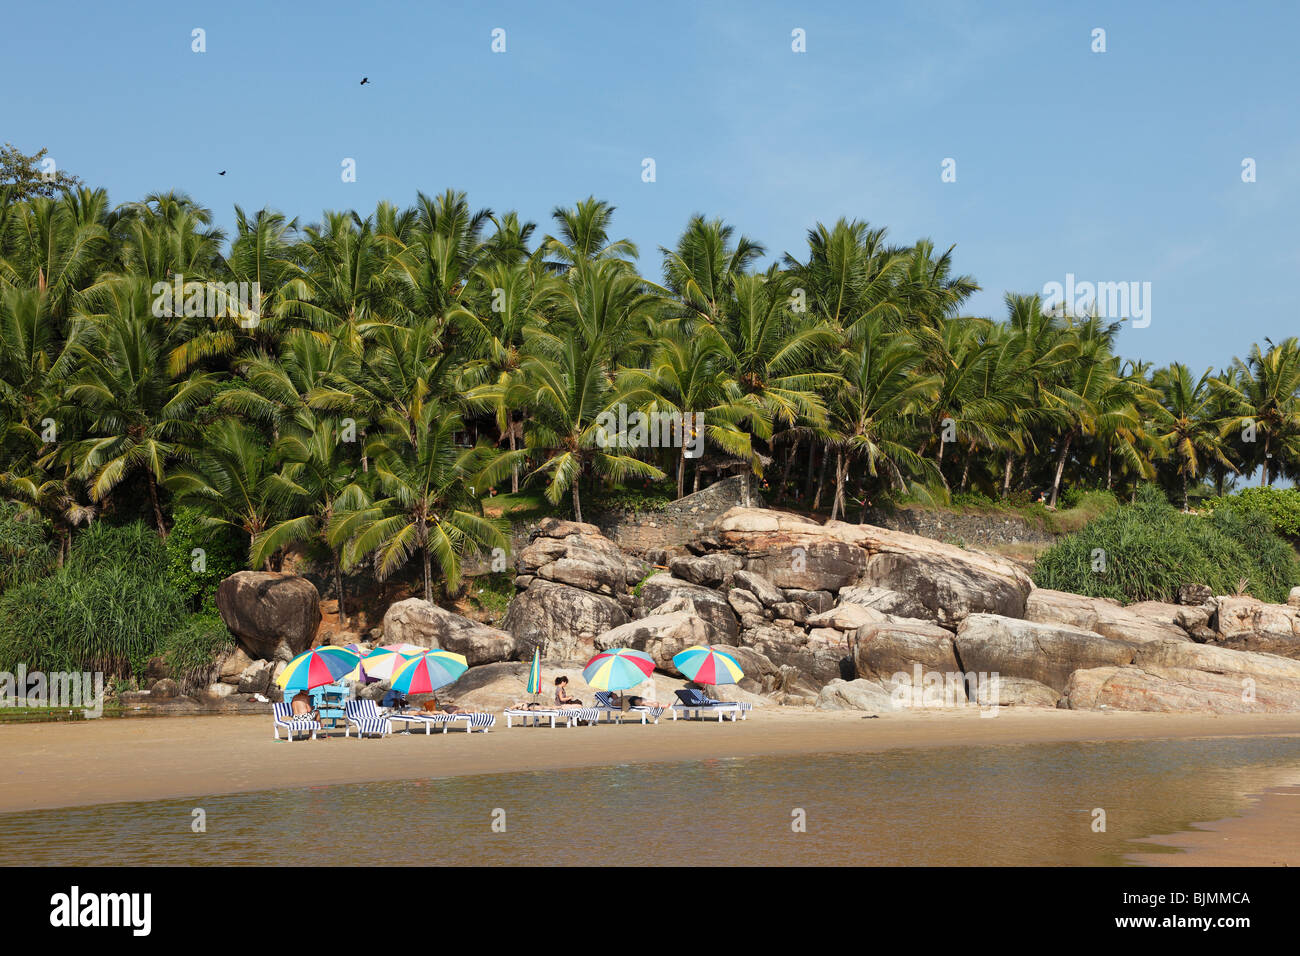 Sun loungers and umbrellas in front of palms, Somatheeram Beach, south of Kovalam, Malabarian Coast, Malabar, Kerala, - Stock Image